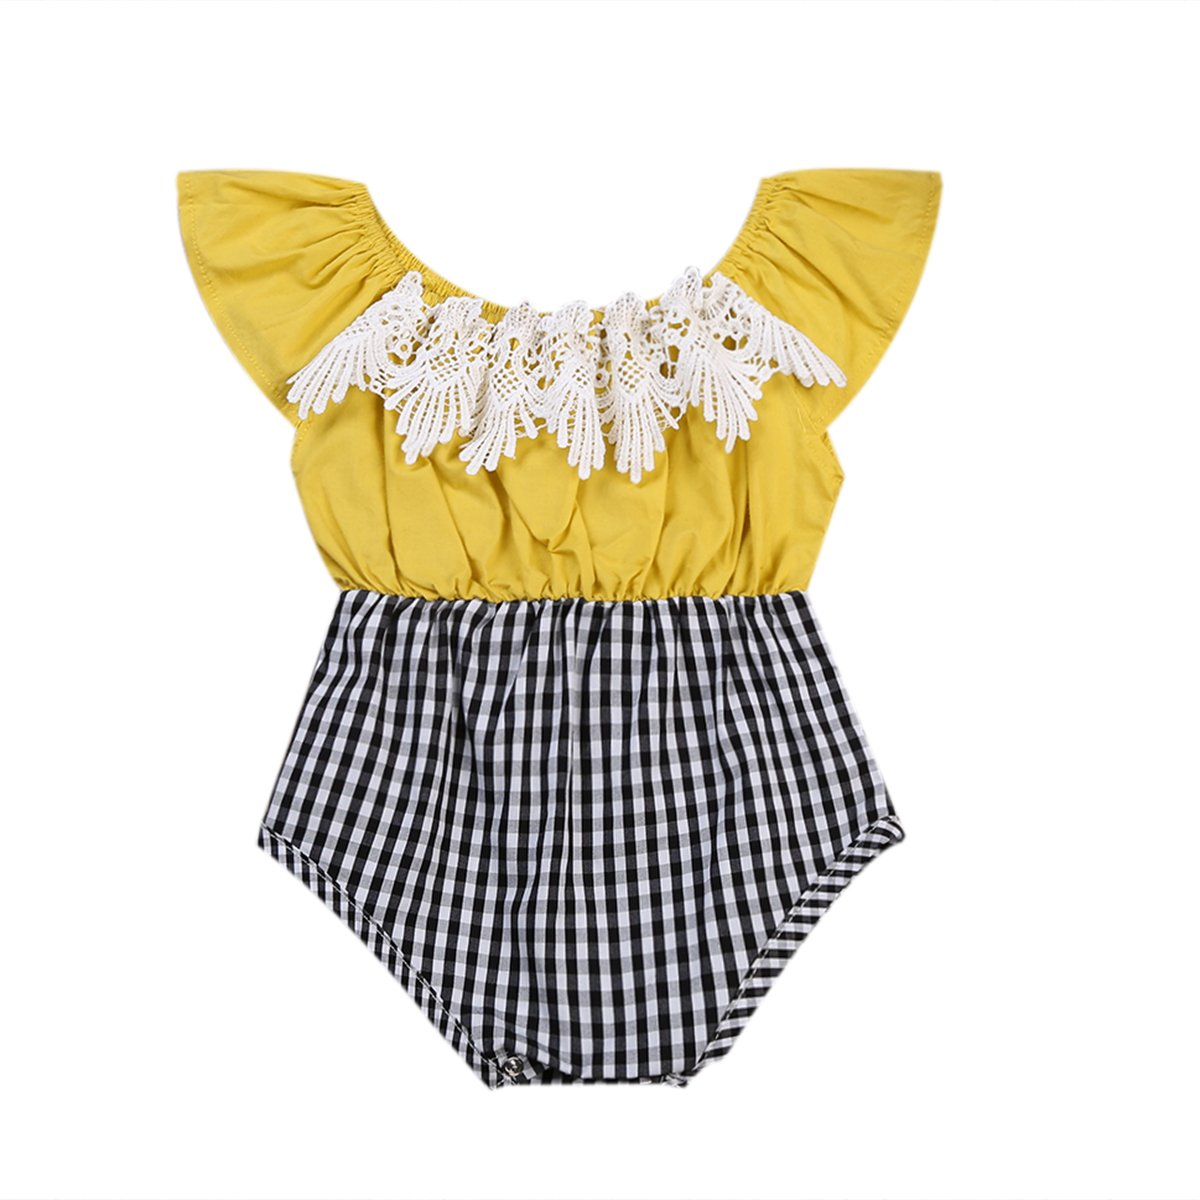 Baby Girls Clothes Off-shoulder Lace Plaid Romper Outfit Mornbaby